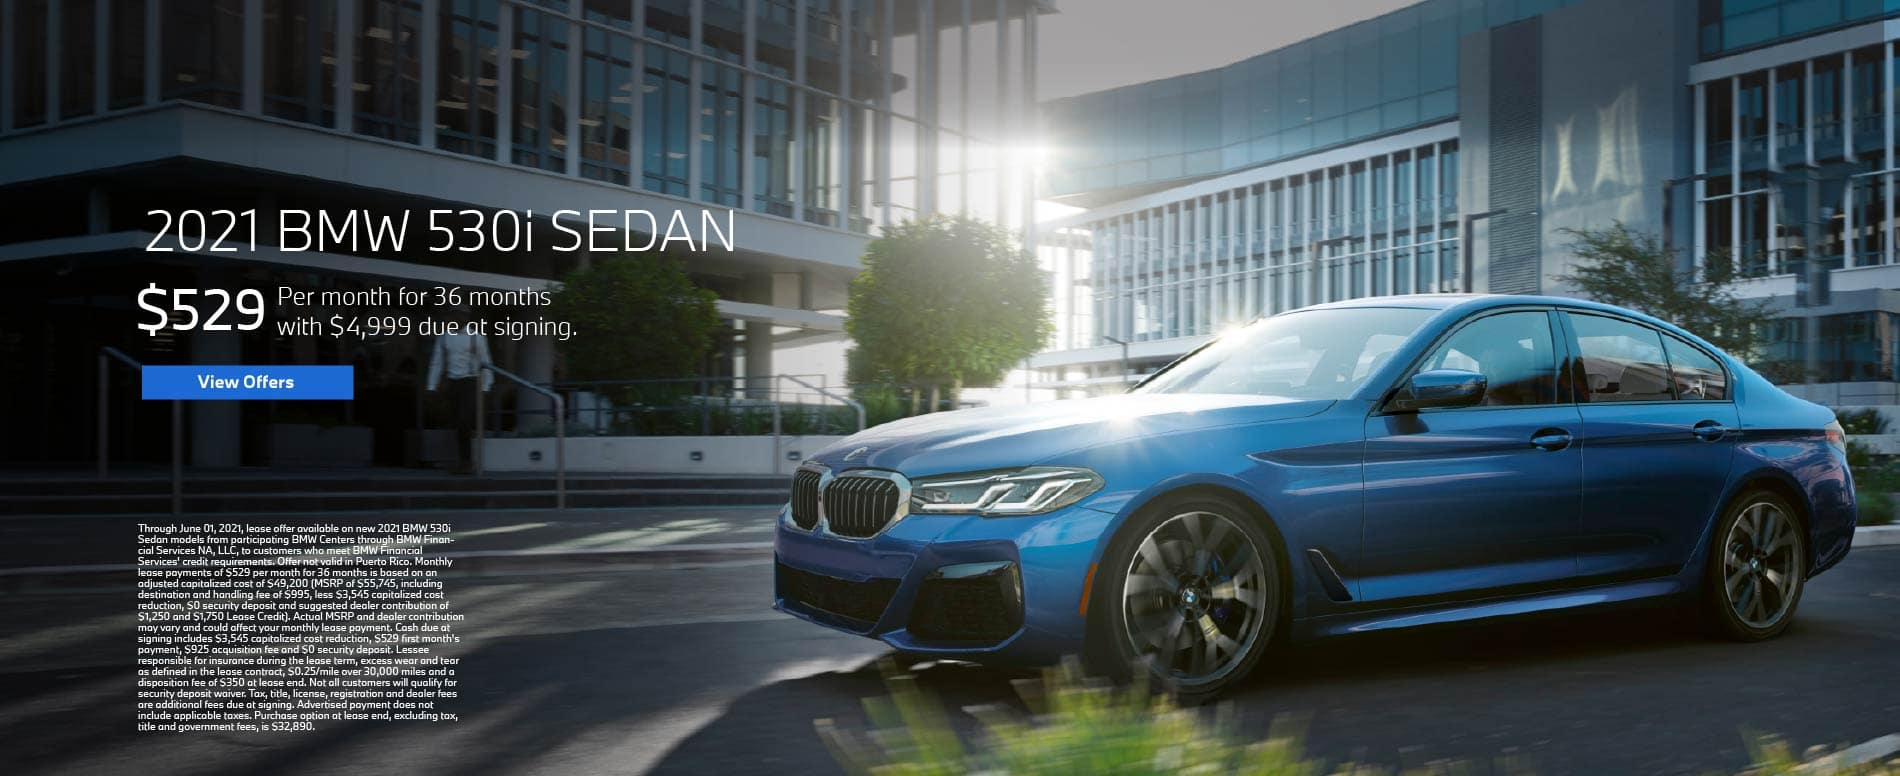 Lease a 2021 BMW 530i for $529 per month - View Offers